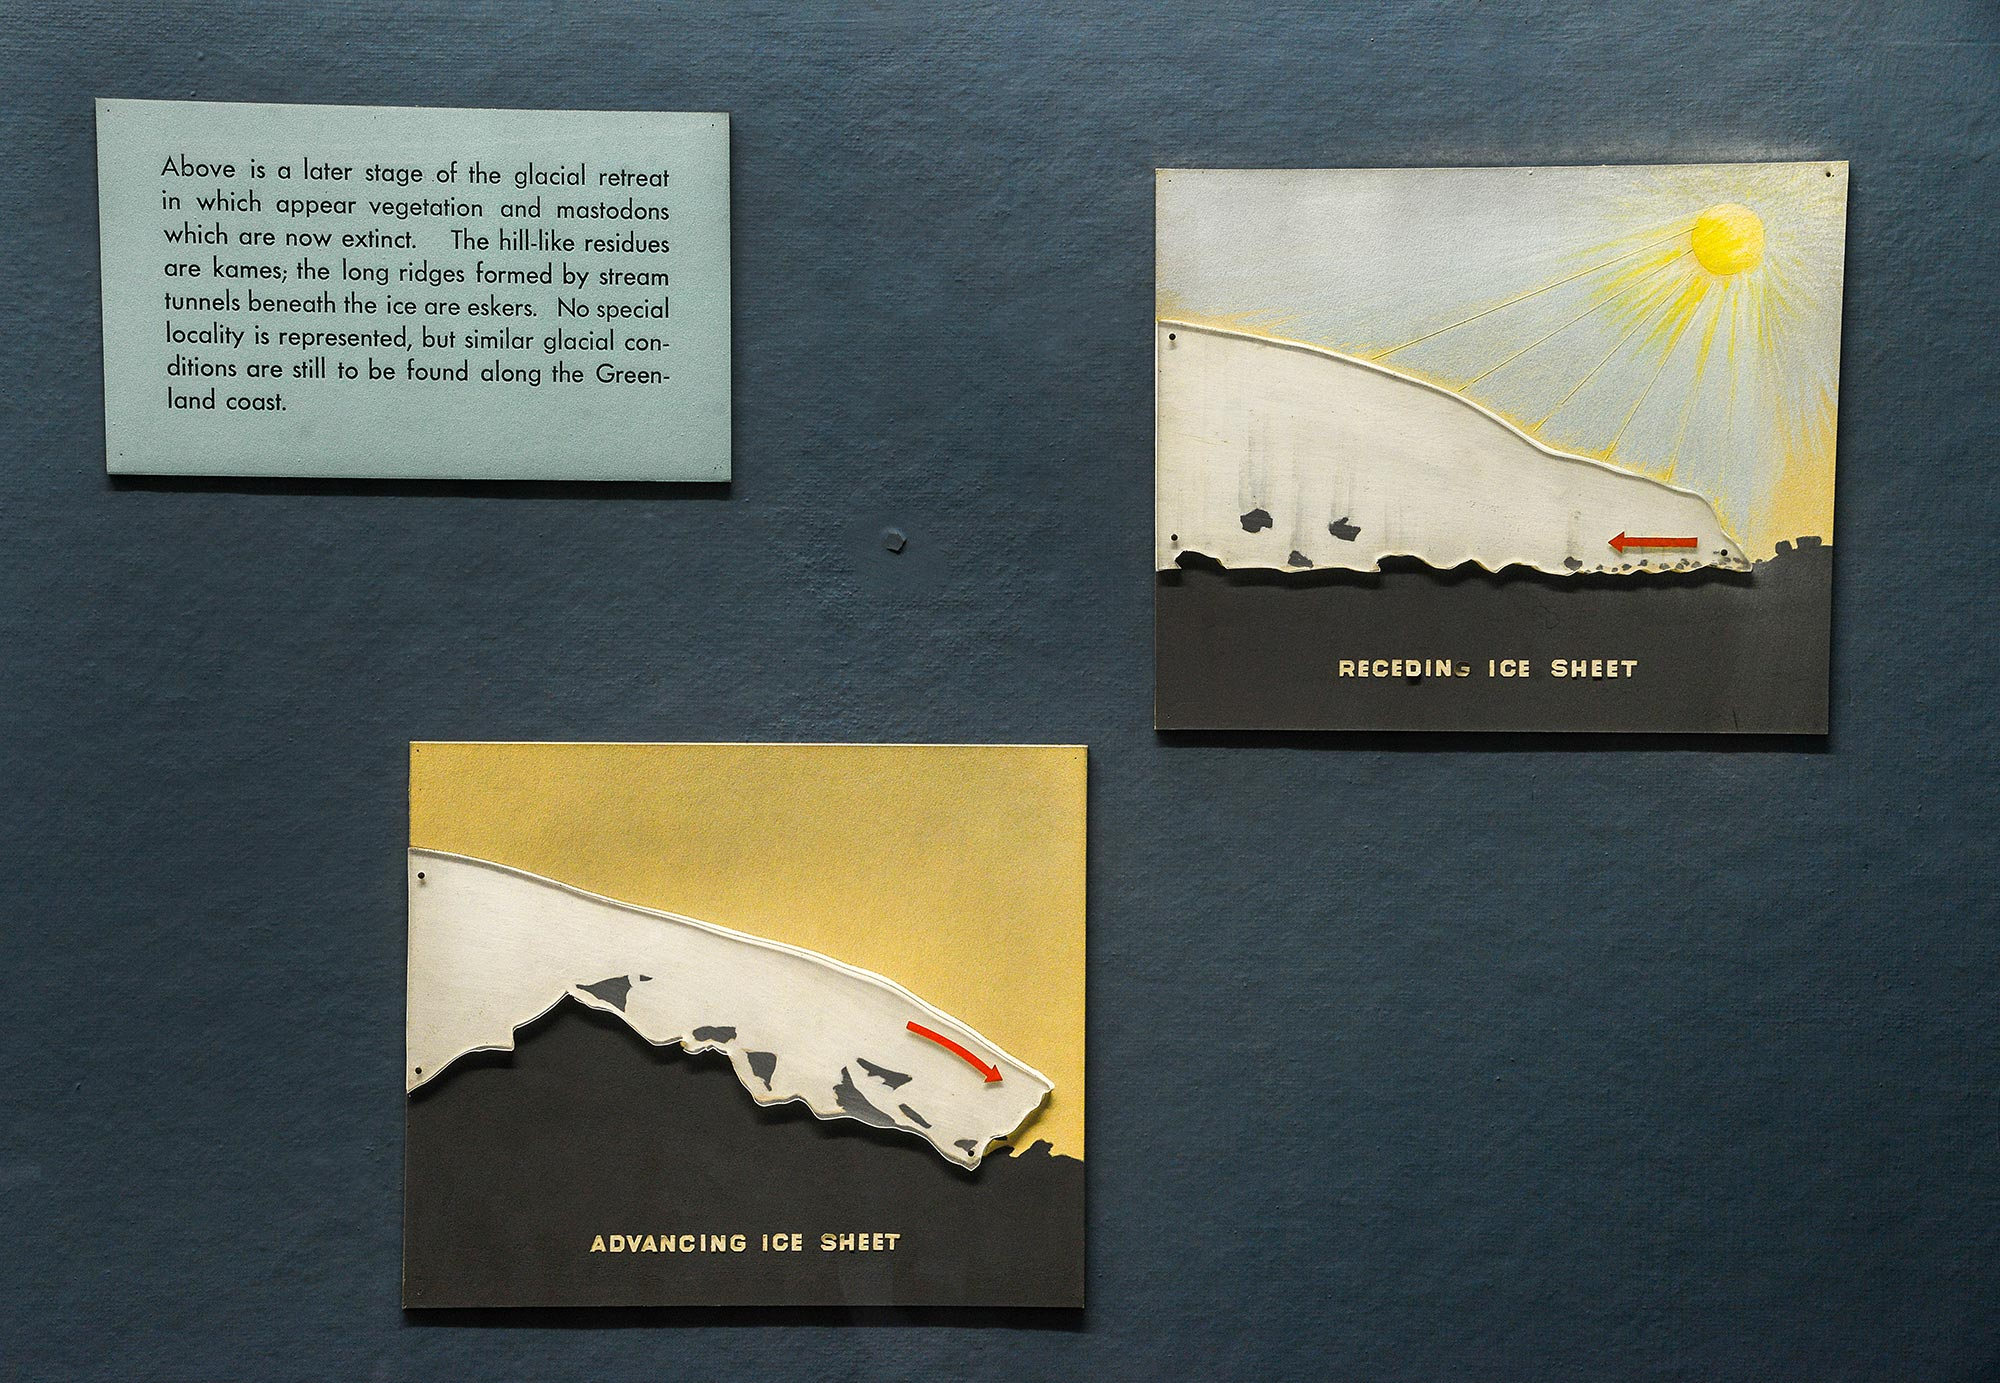 Text and illustrations explaining receding ice sheet